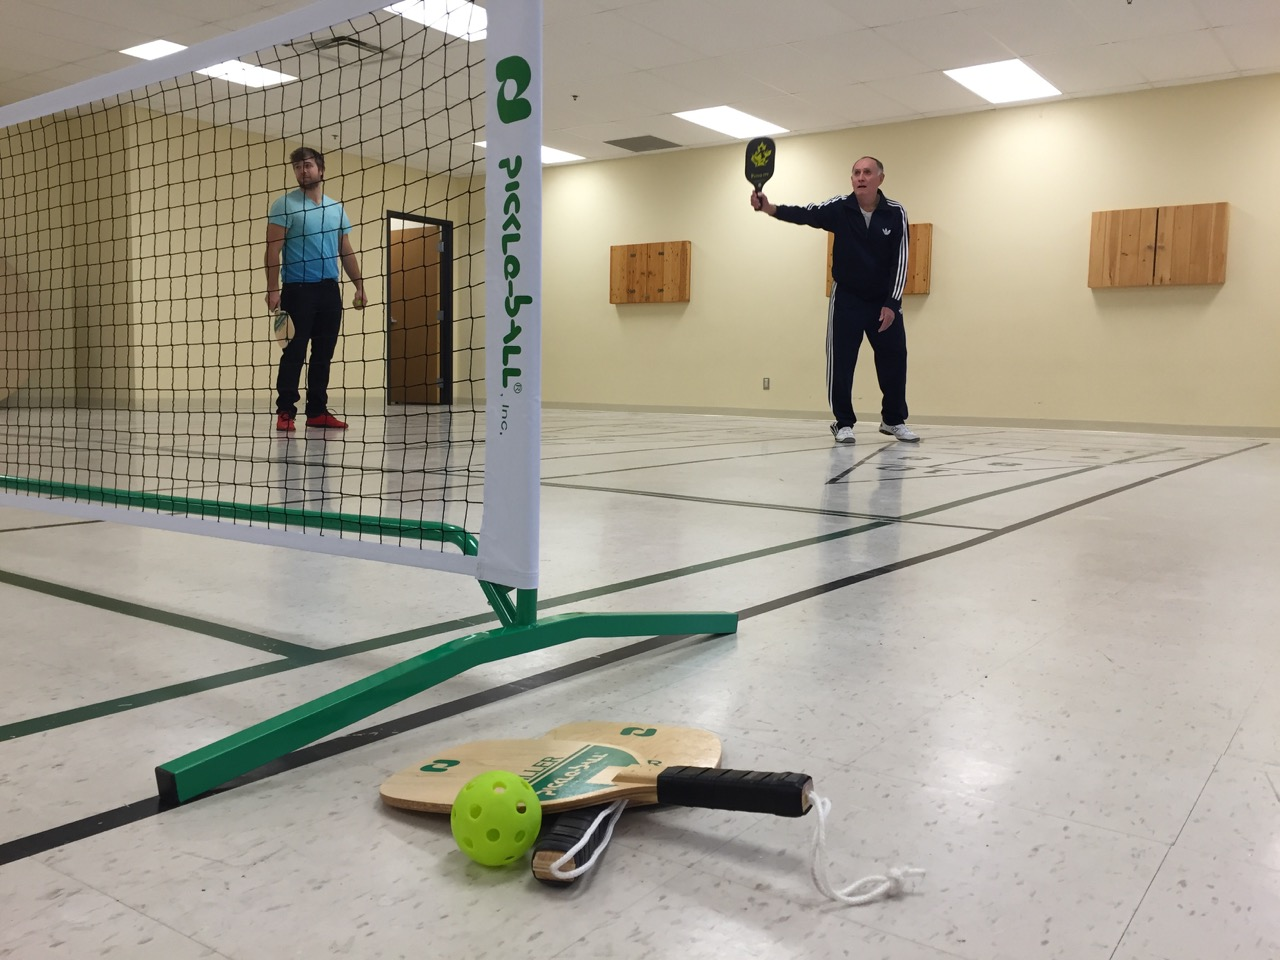 Dennis Wilks, right, shows Ben Robitaille the Pickleball basics